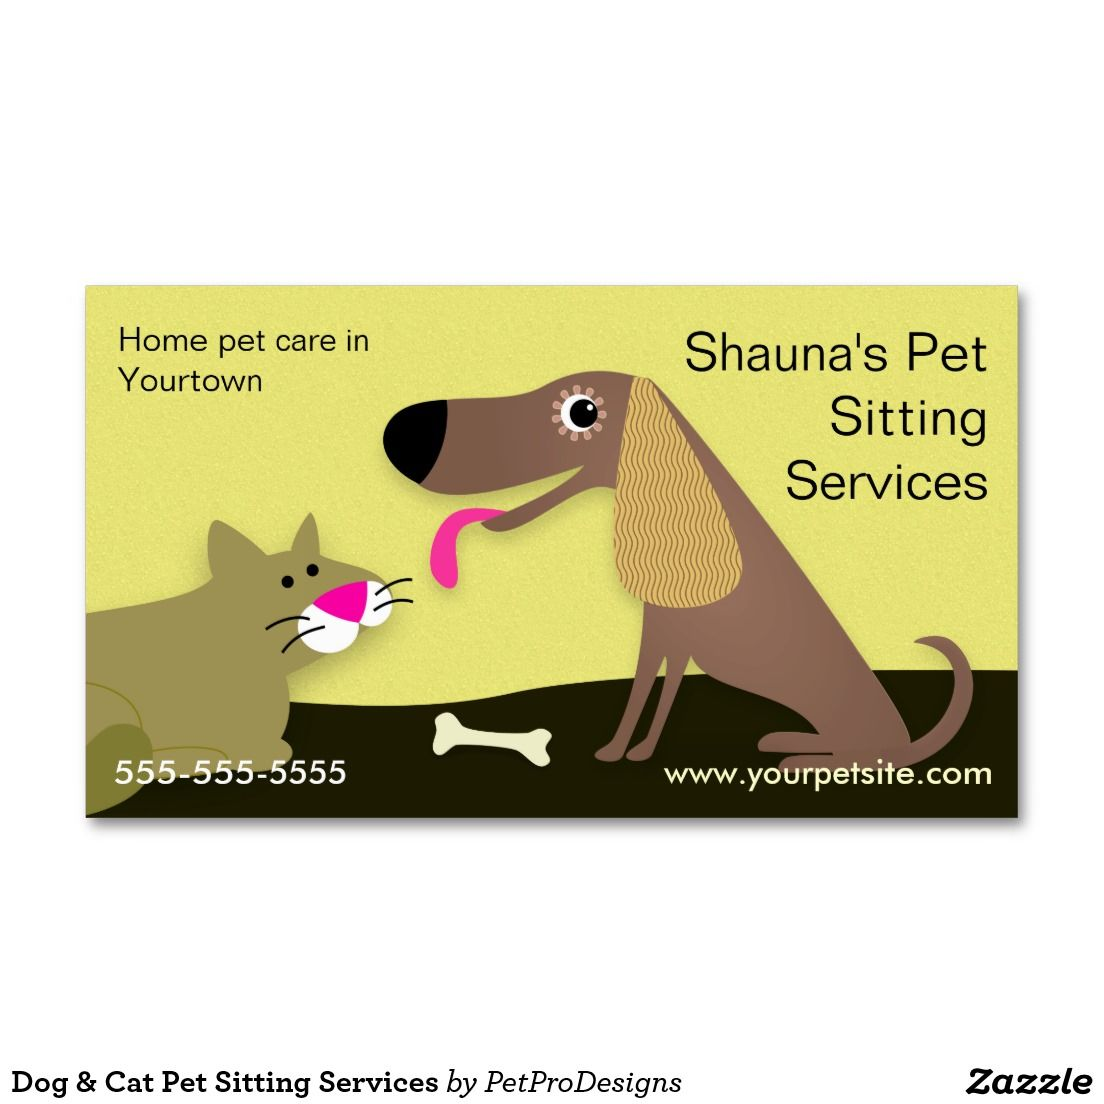 Dog & Cat Pet Sitting Services Standard Business Card | MILES SMILES ...